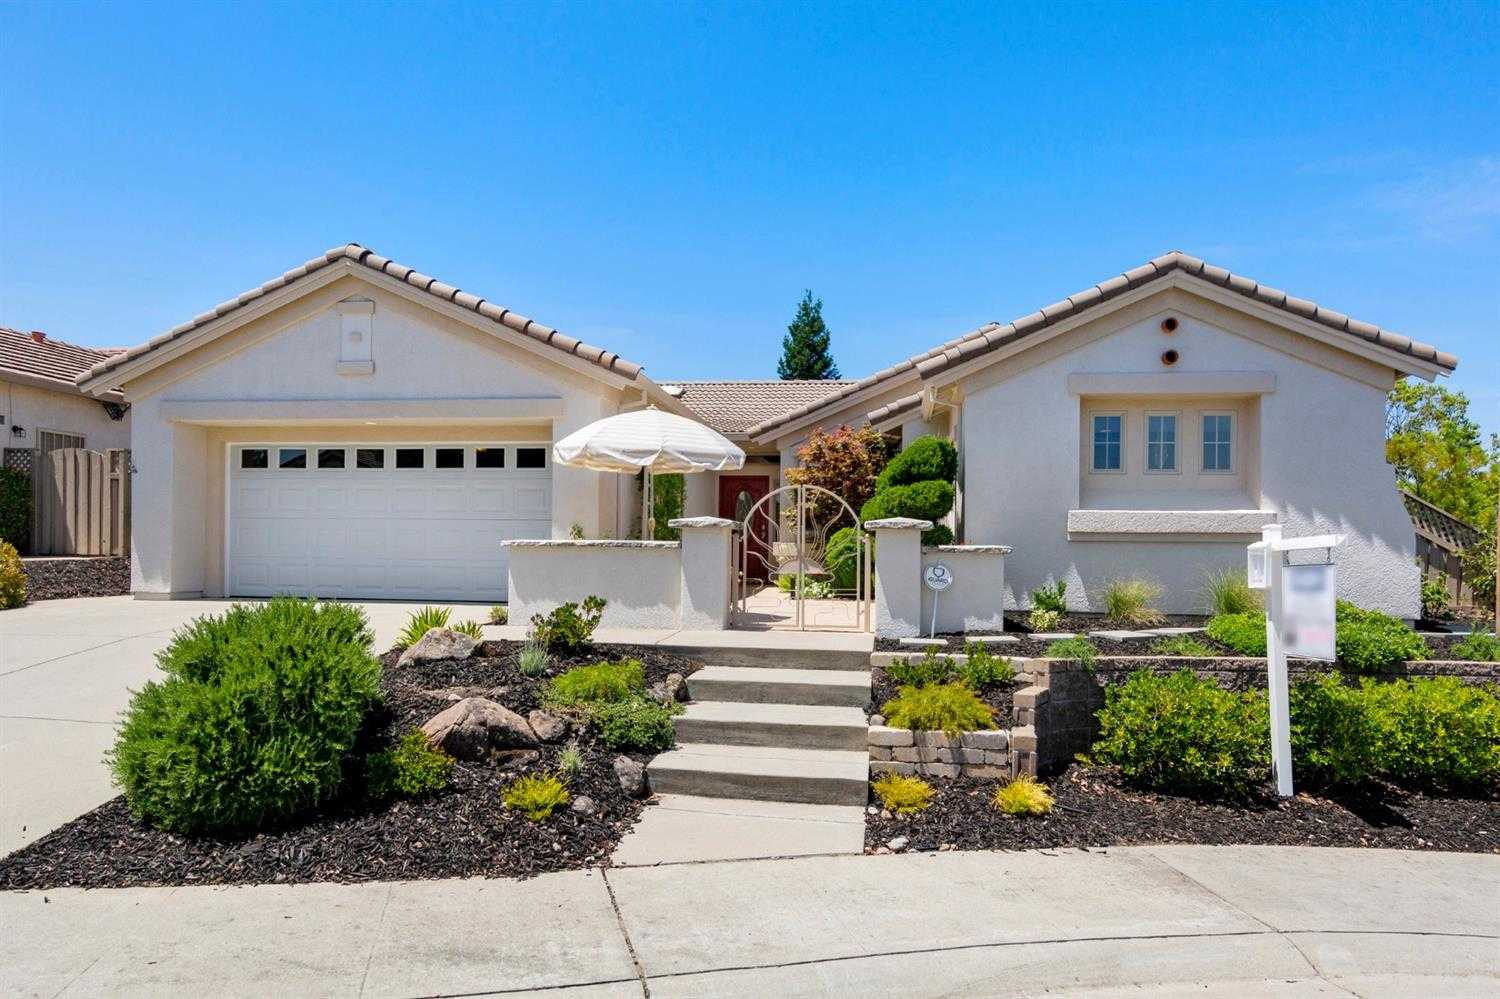 $649,000 - 2Br/2Ba -  for Sale in Sun City Lincoln Hills, Lincoln